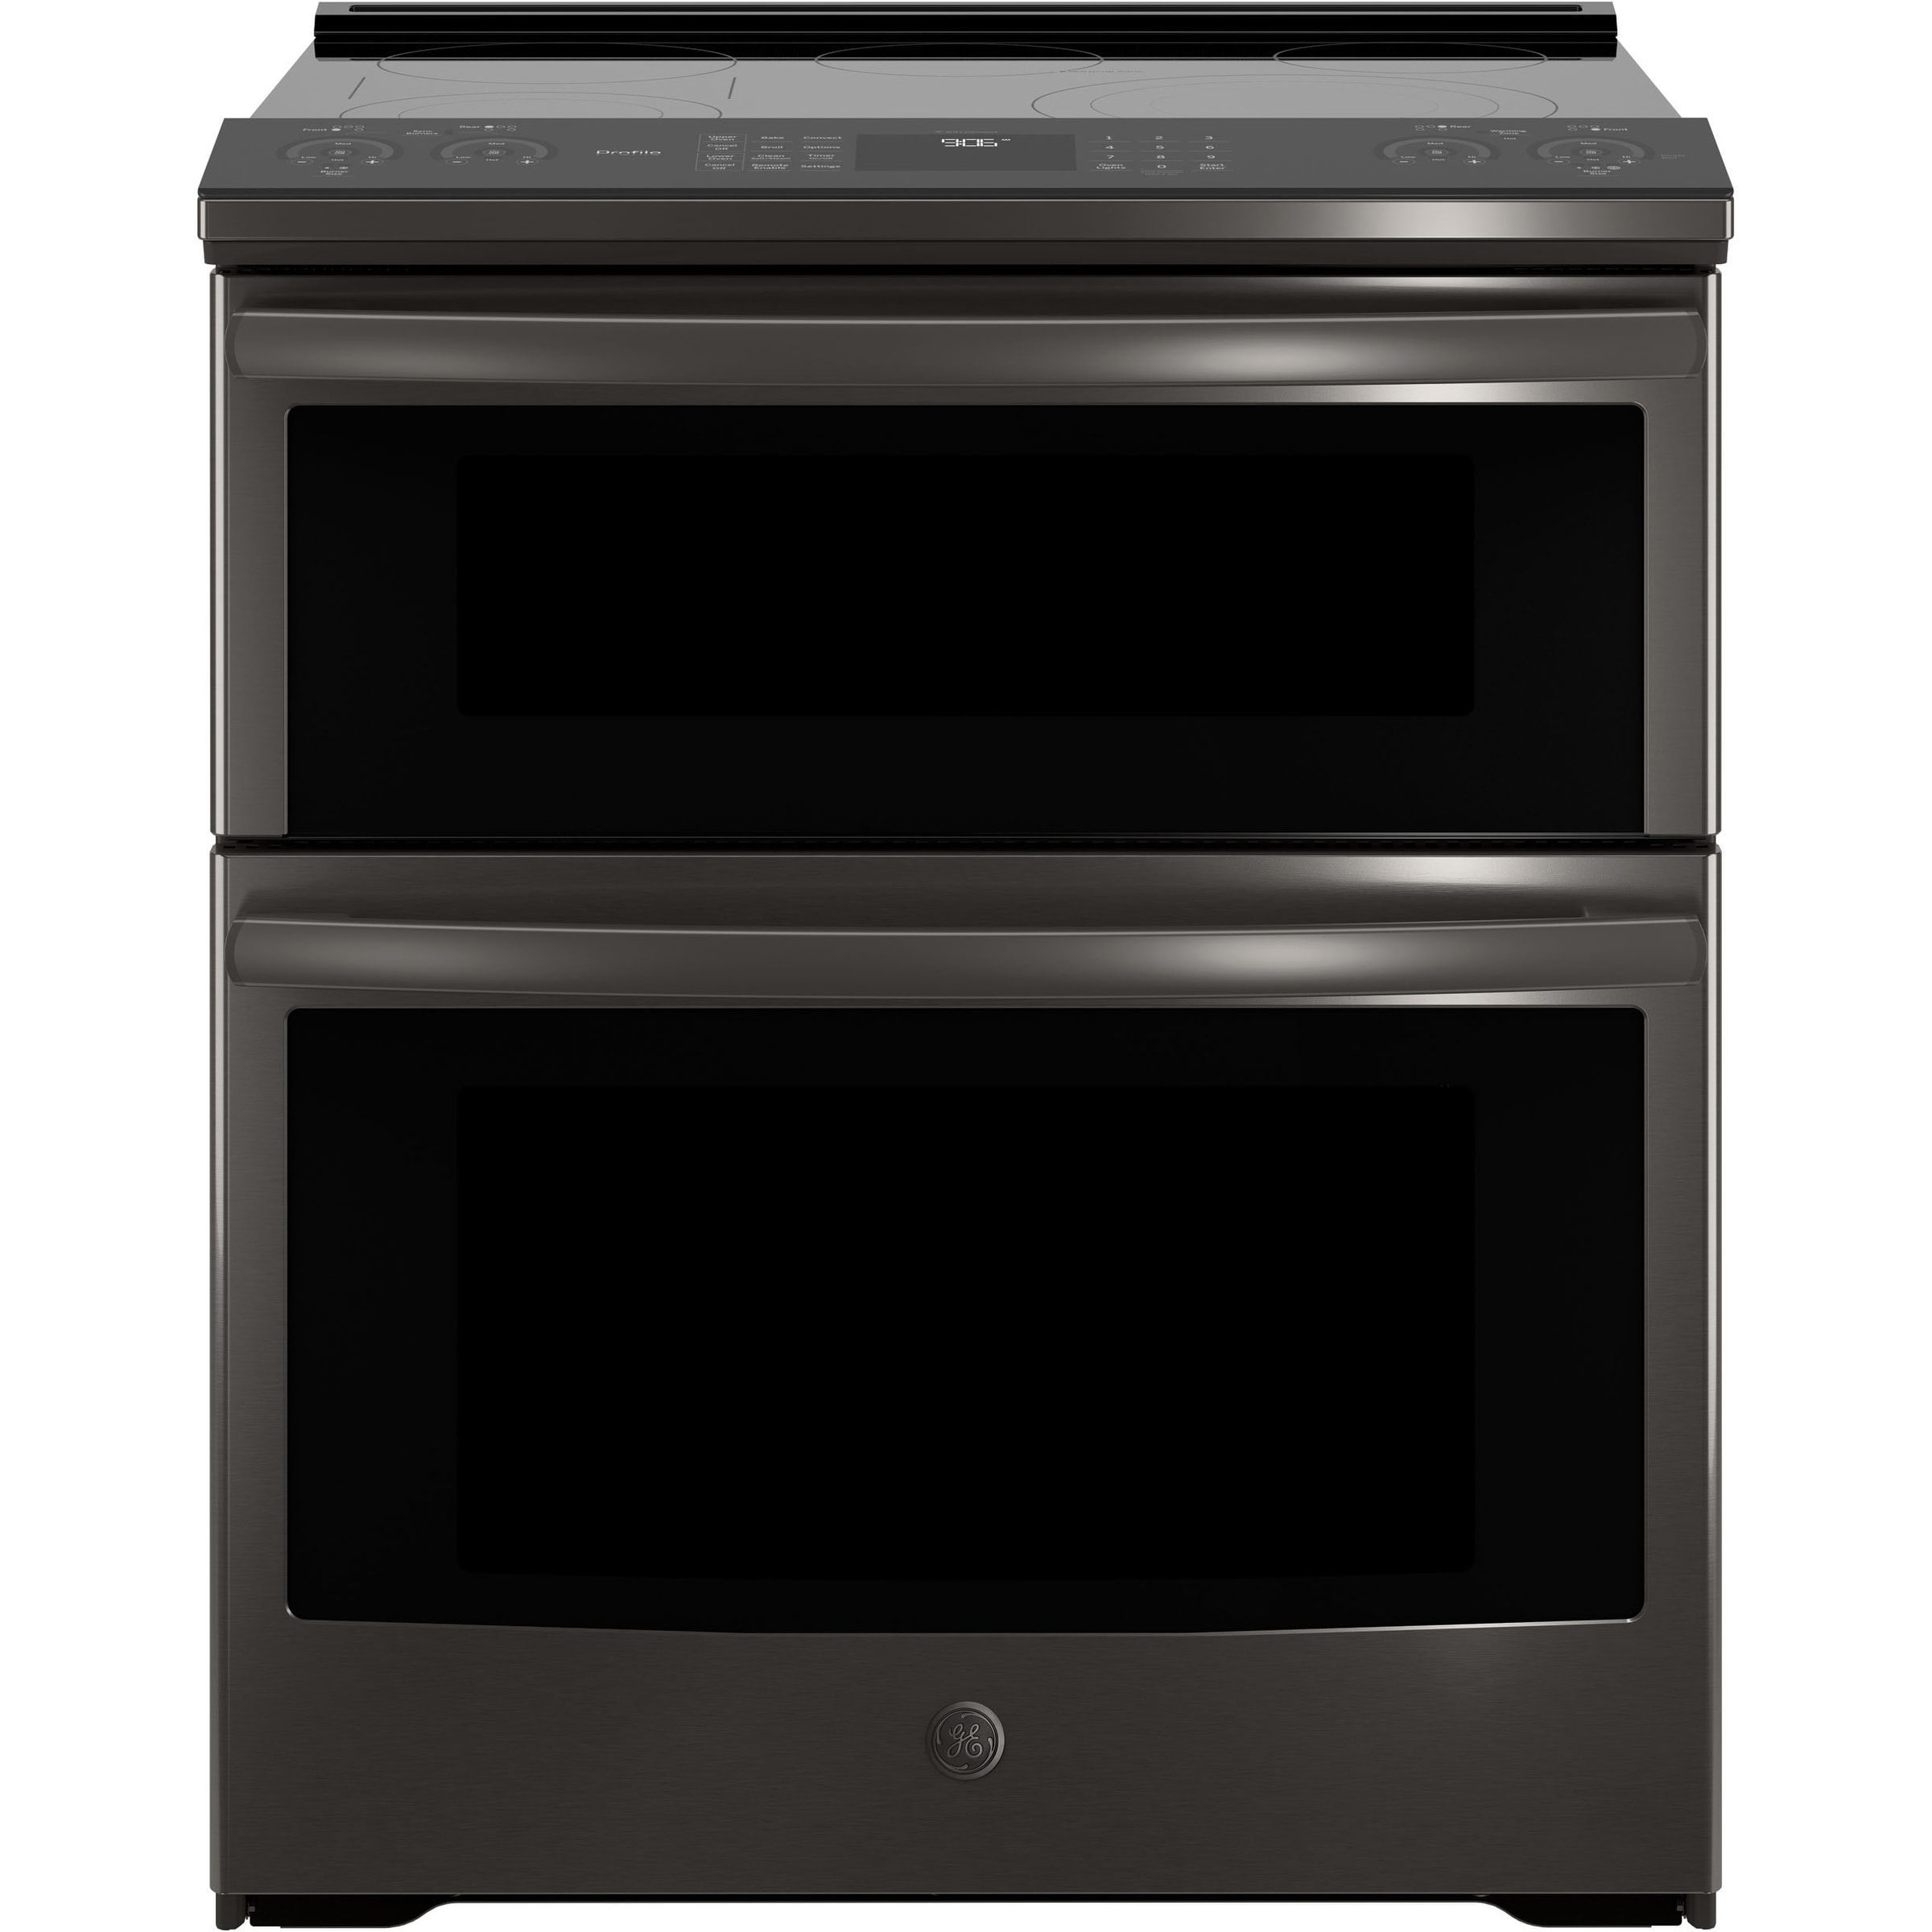 GE Profile Series 30 Slide-In Electric Double Oven Convection Range